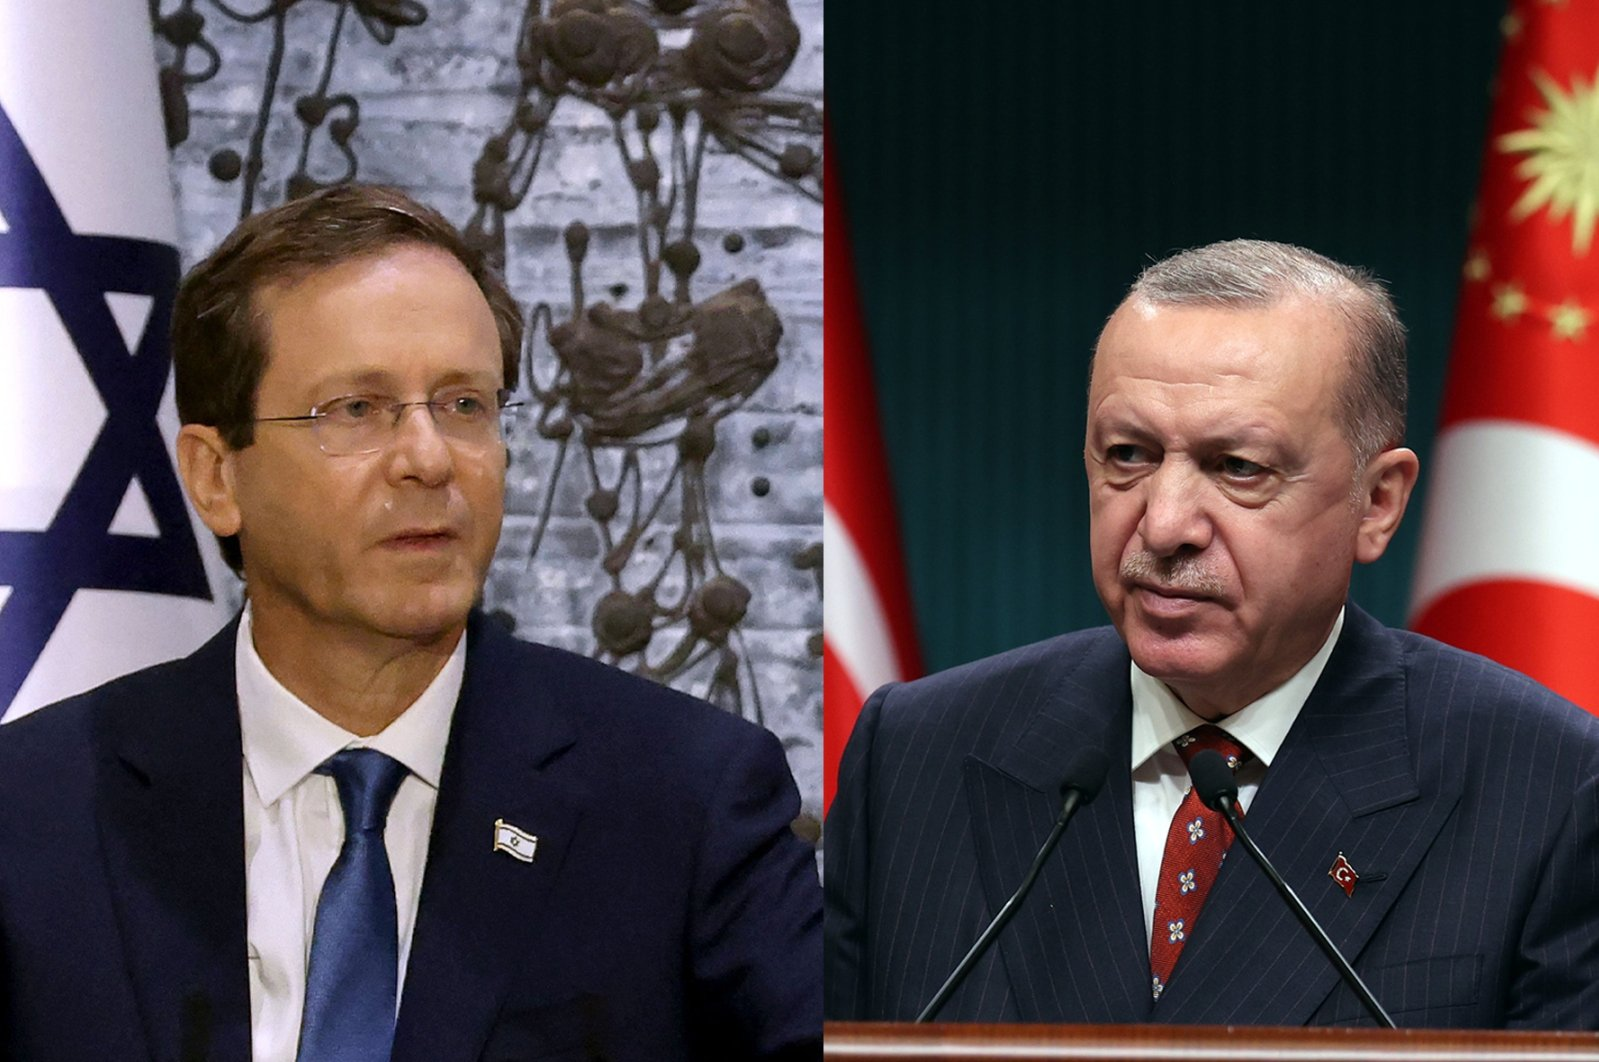 Israeli President Isaac Herzog (L) looks on during a press conference at the president's residence in West Jerusalem, Israel, July 7, 2021. President Recep Tayyip Erdoğan prepares to give a press conference at Ankara's Presidential Complex, Turkey, July 12, 2021. (Photos by AFP & AA)